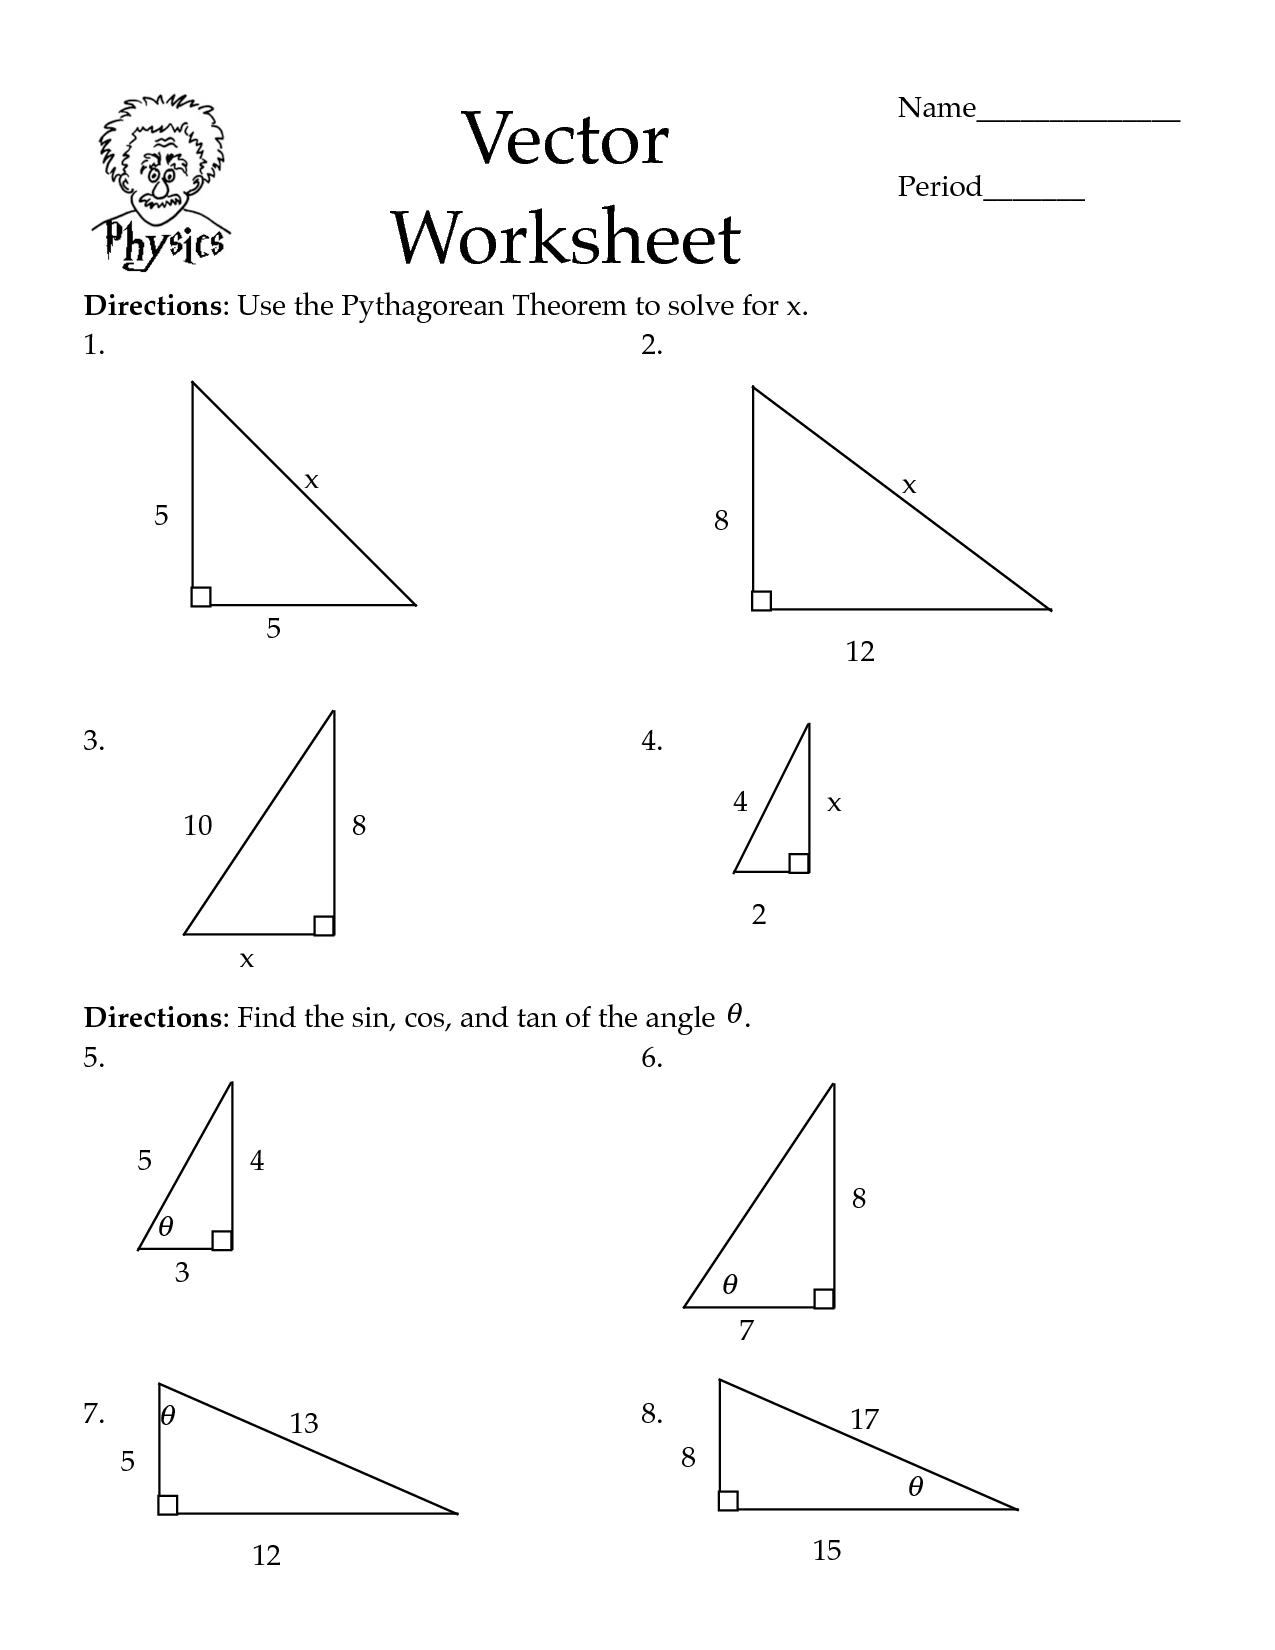 pythagorean theorem worksheets | Cos Law Worksheet - PDF | Math ...